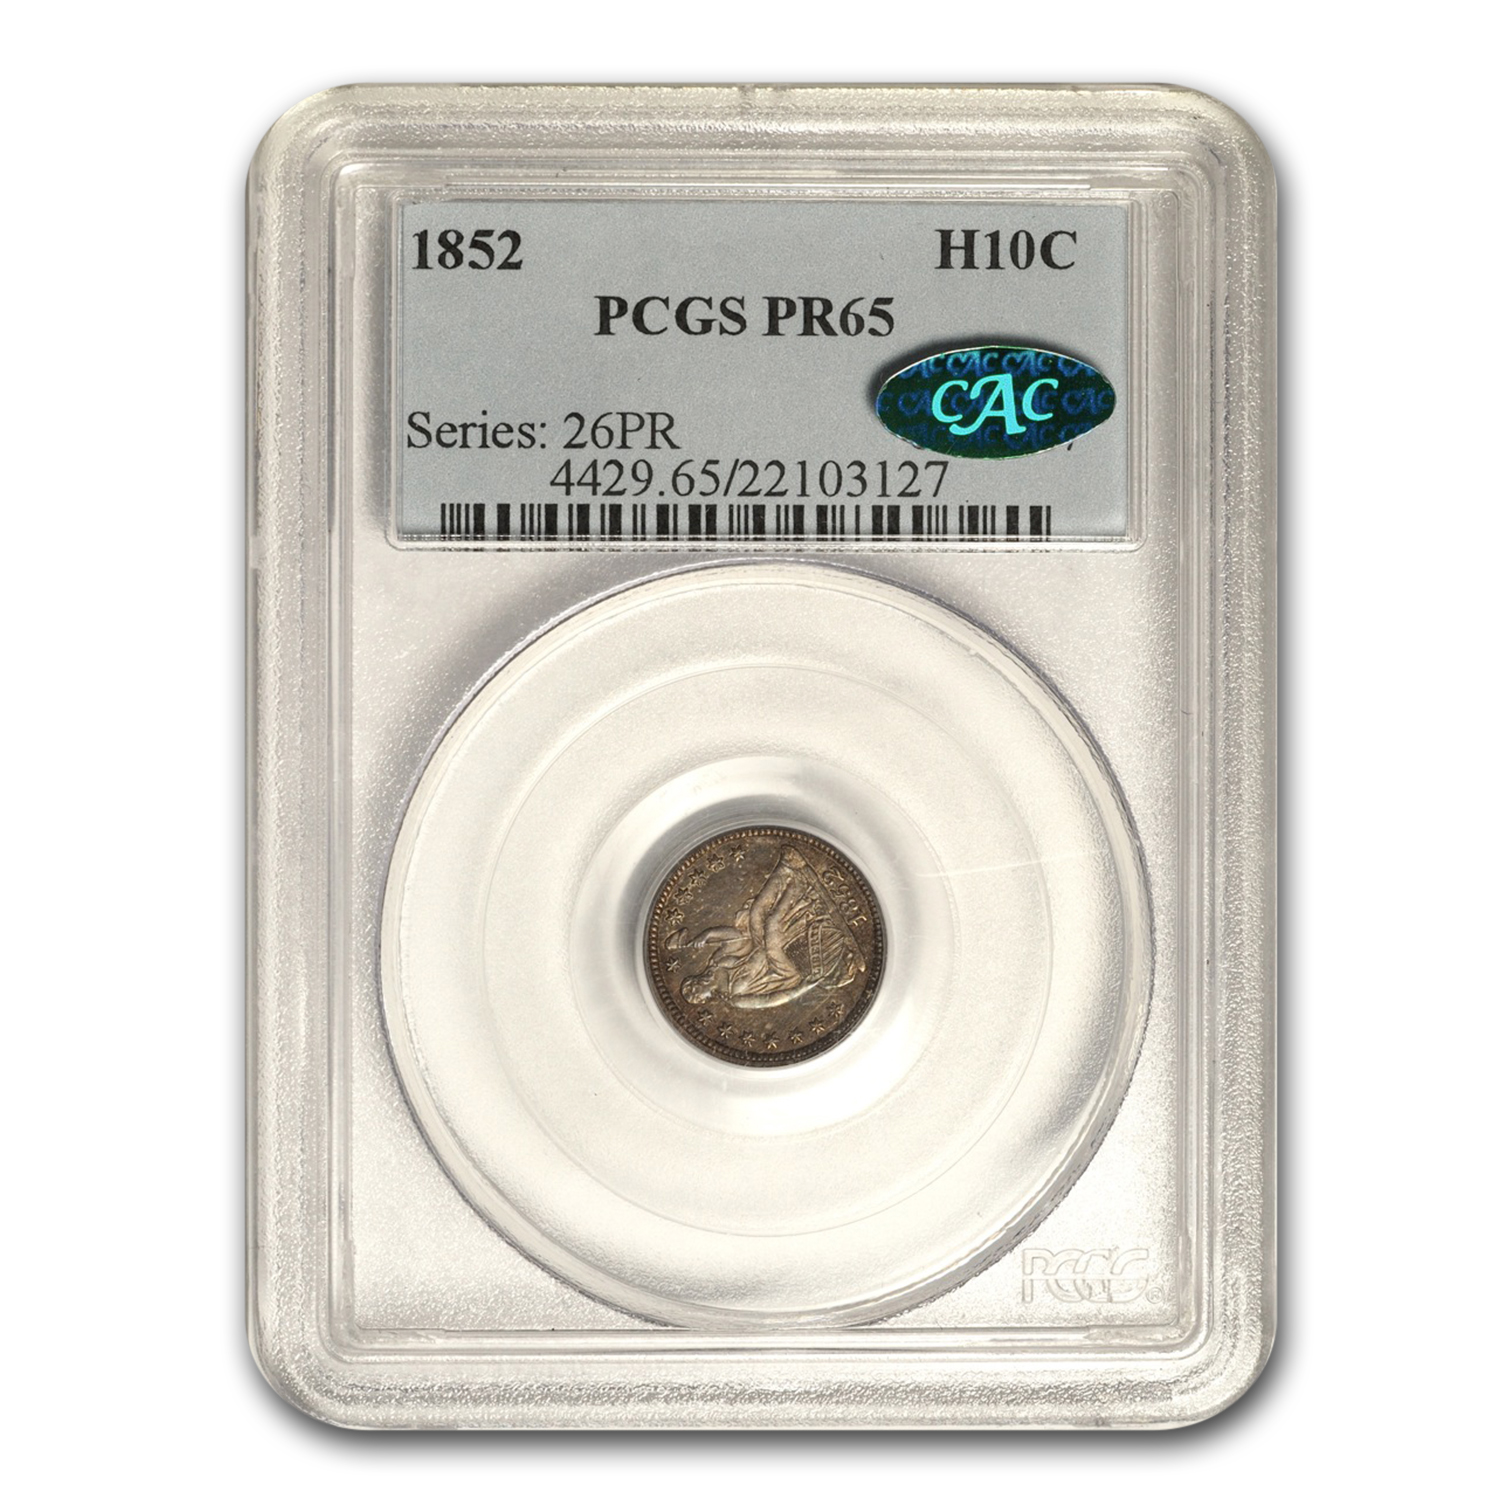 1852 Liberty Seated Half Dime Proof-65 PCGS (CAC)